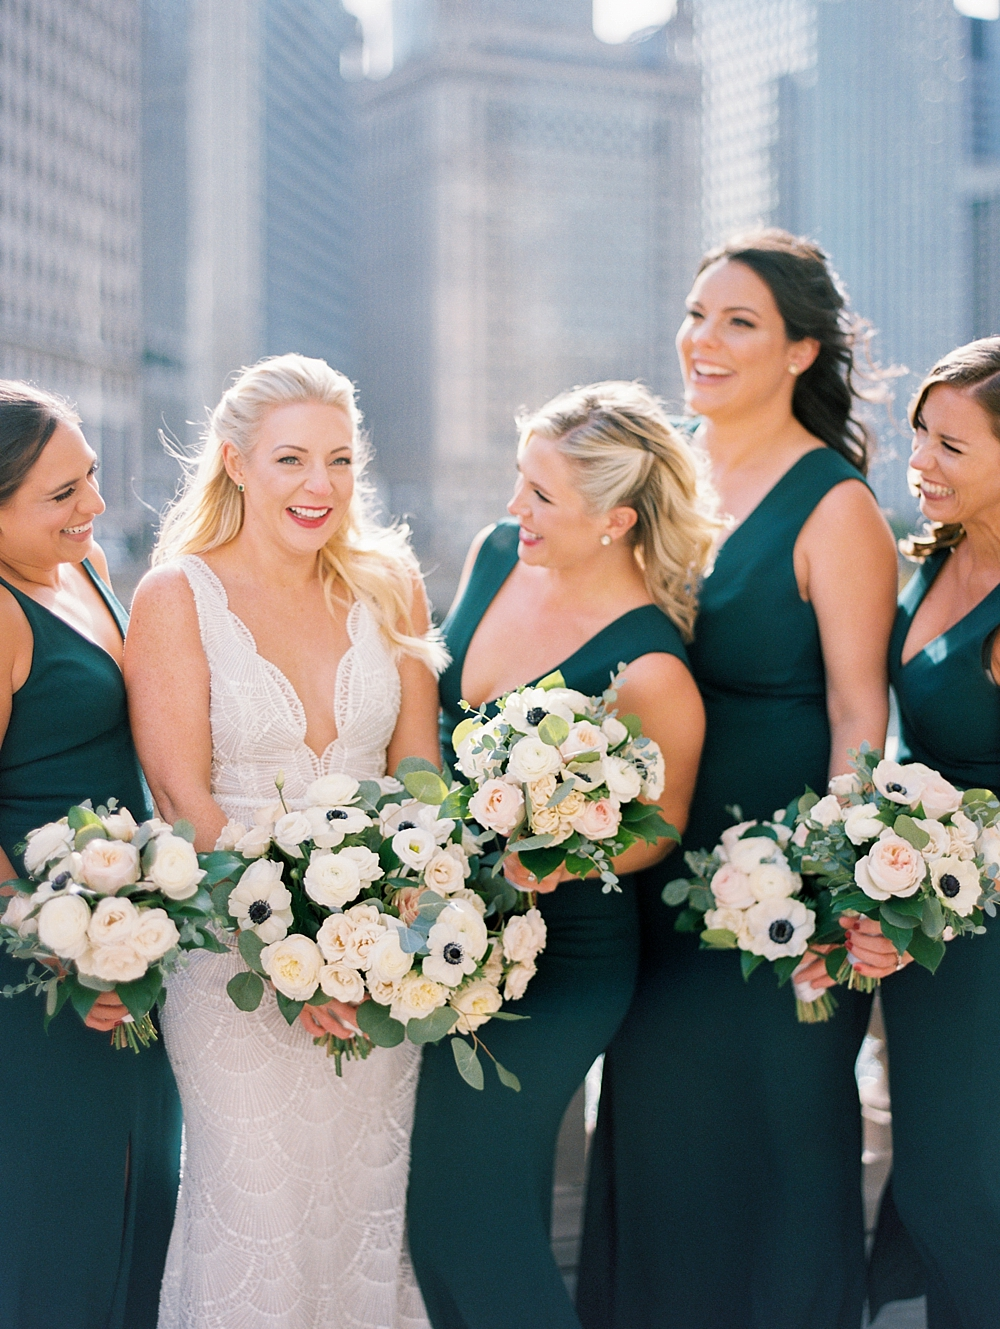 kristin-la-voie-photography-chicago-Wedding-Photographer-kimpton-gray-hotel-3